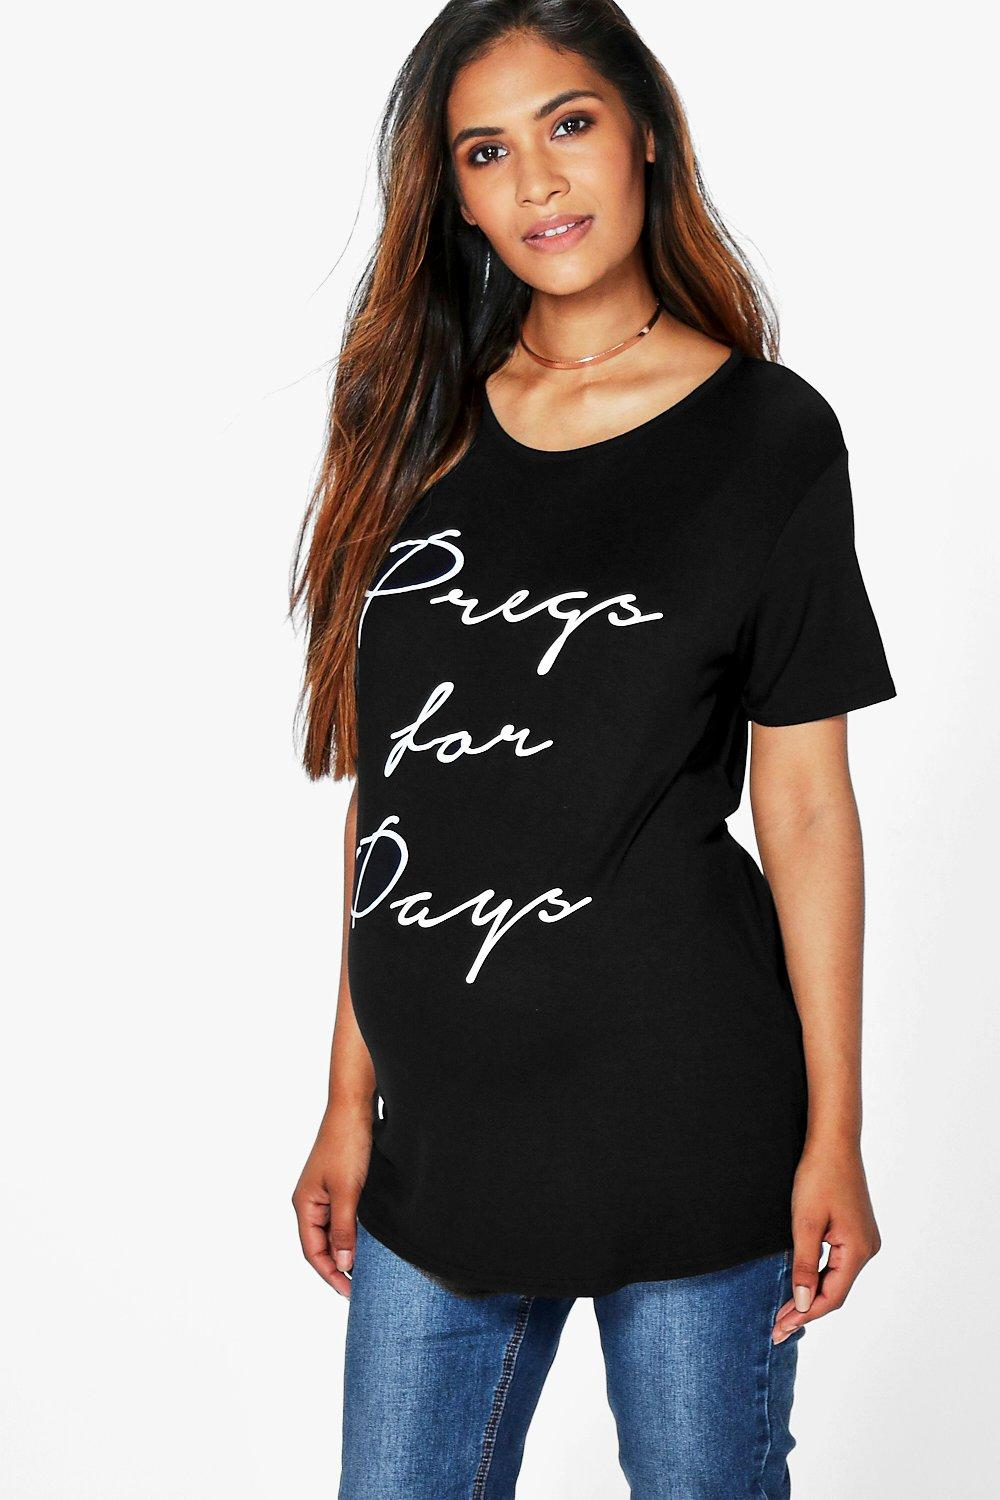 Maternity Sammy Pregs For Days Printed Tee